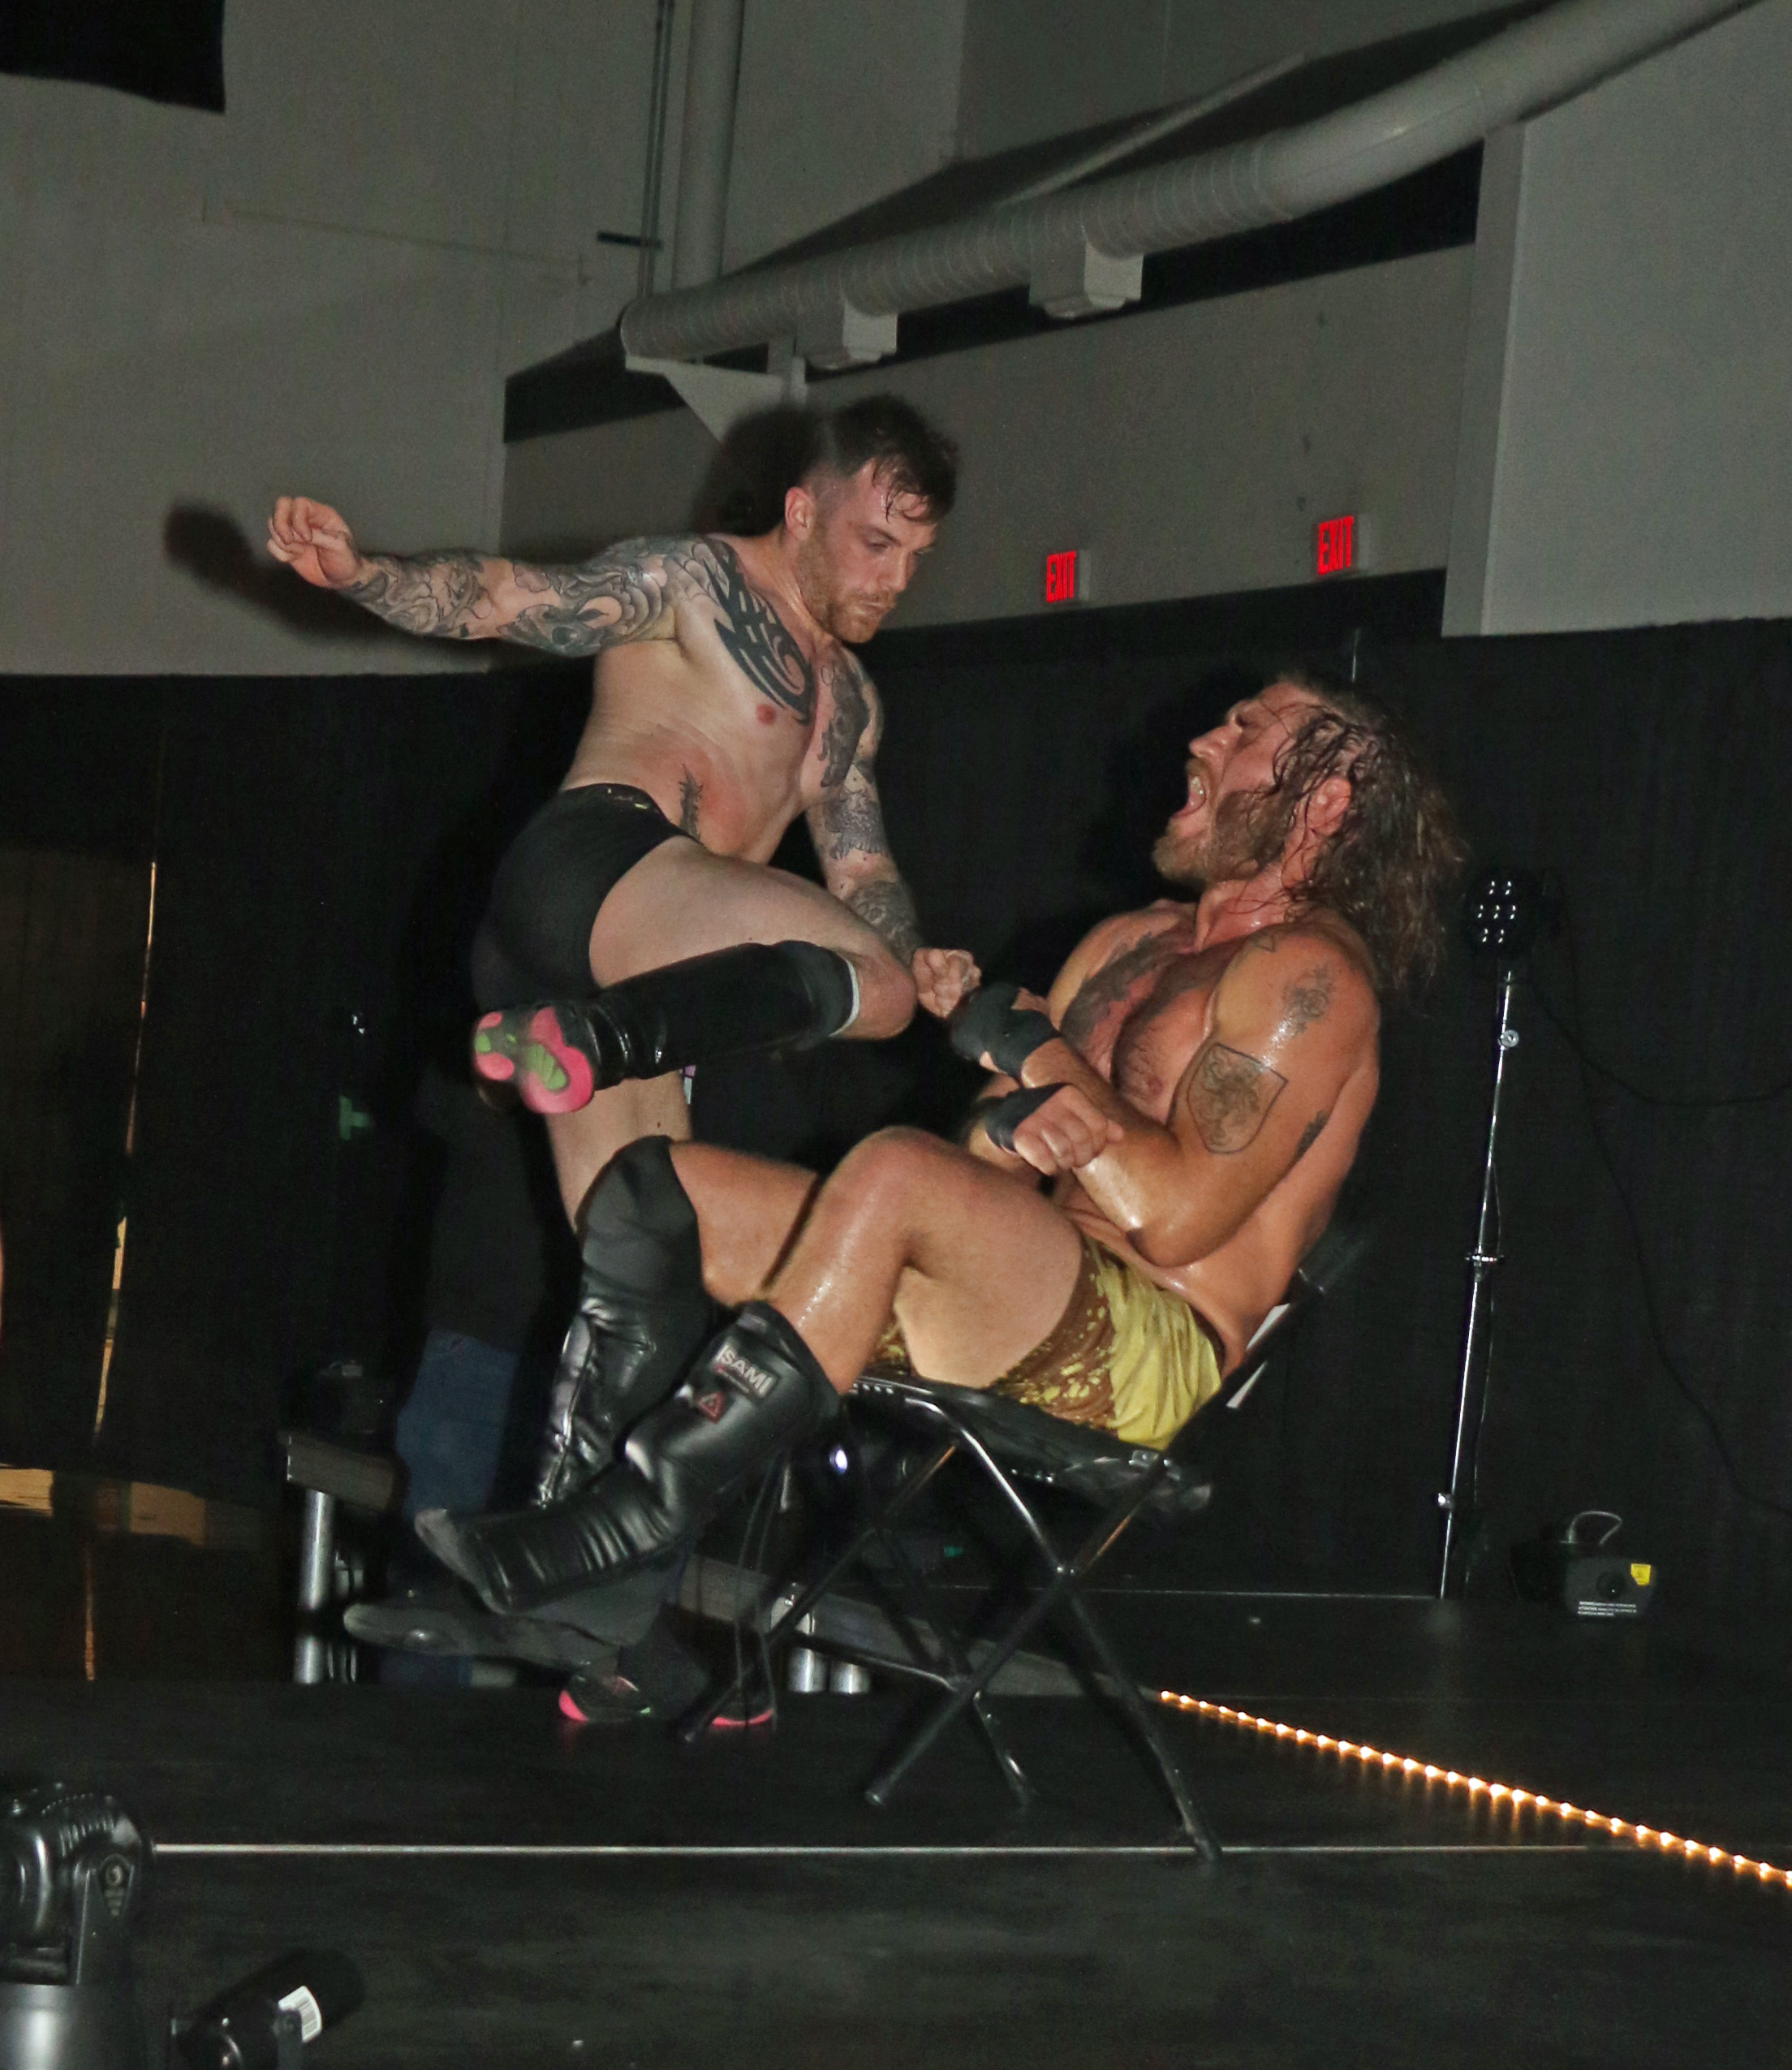 Chris Ridgeway hits a running knee to Tom Lawlor on the entrance stage.